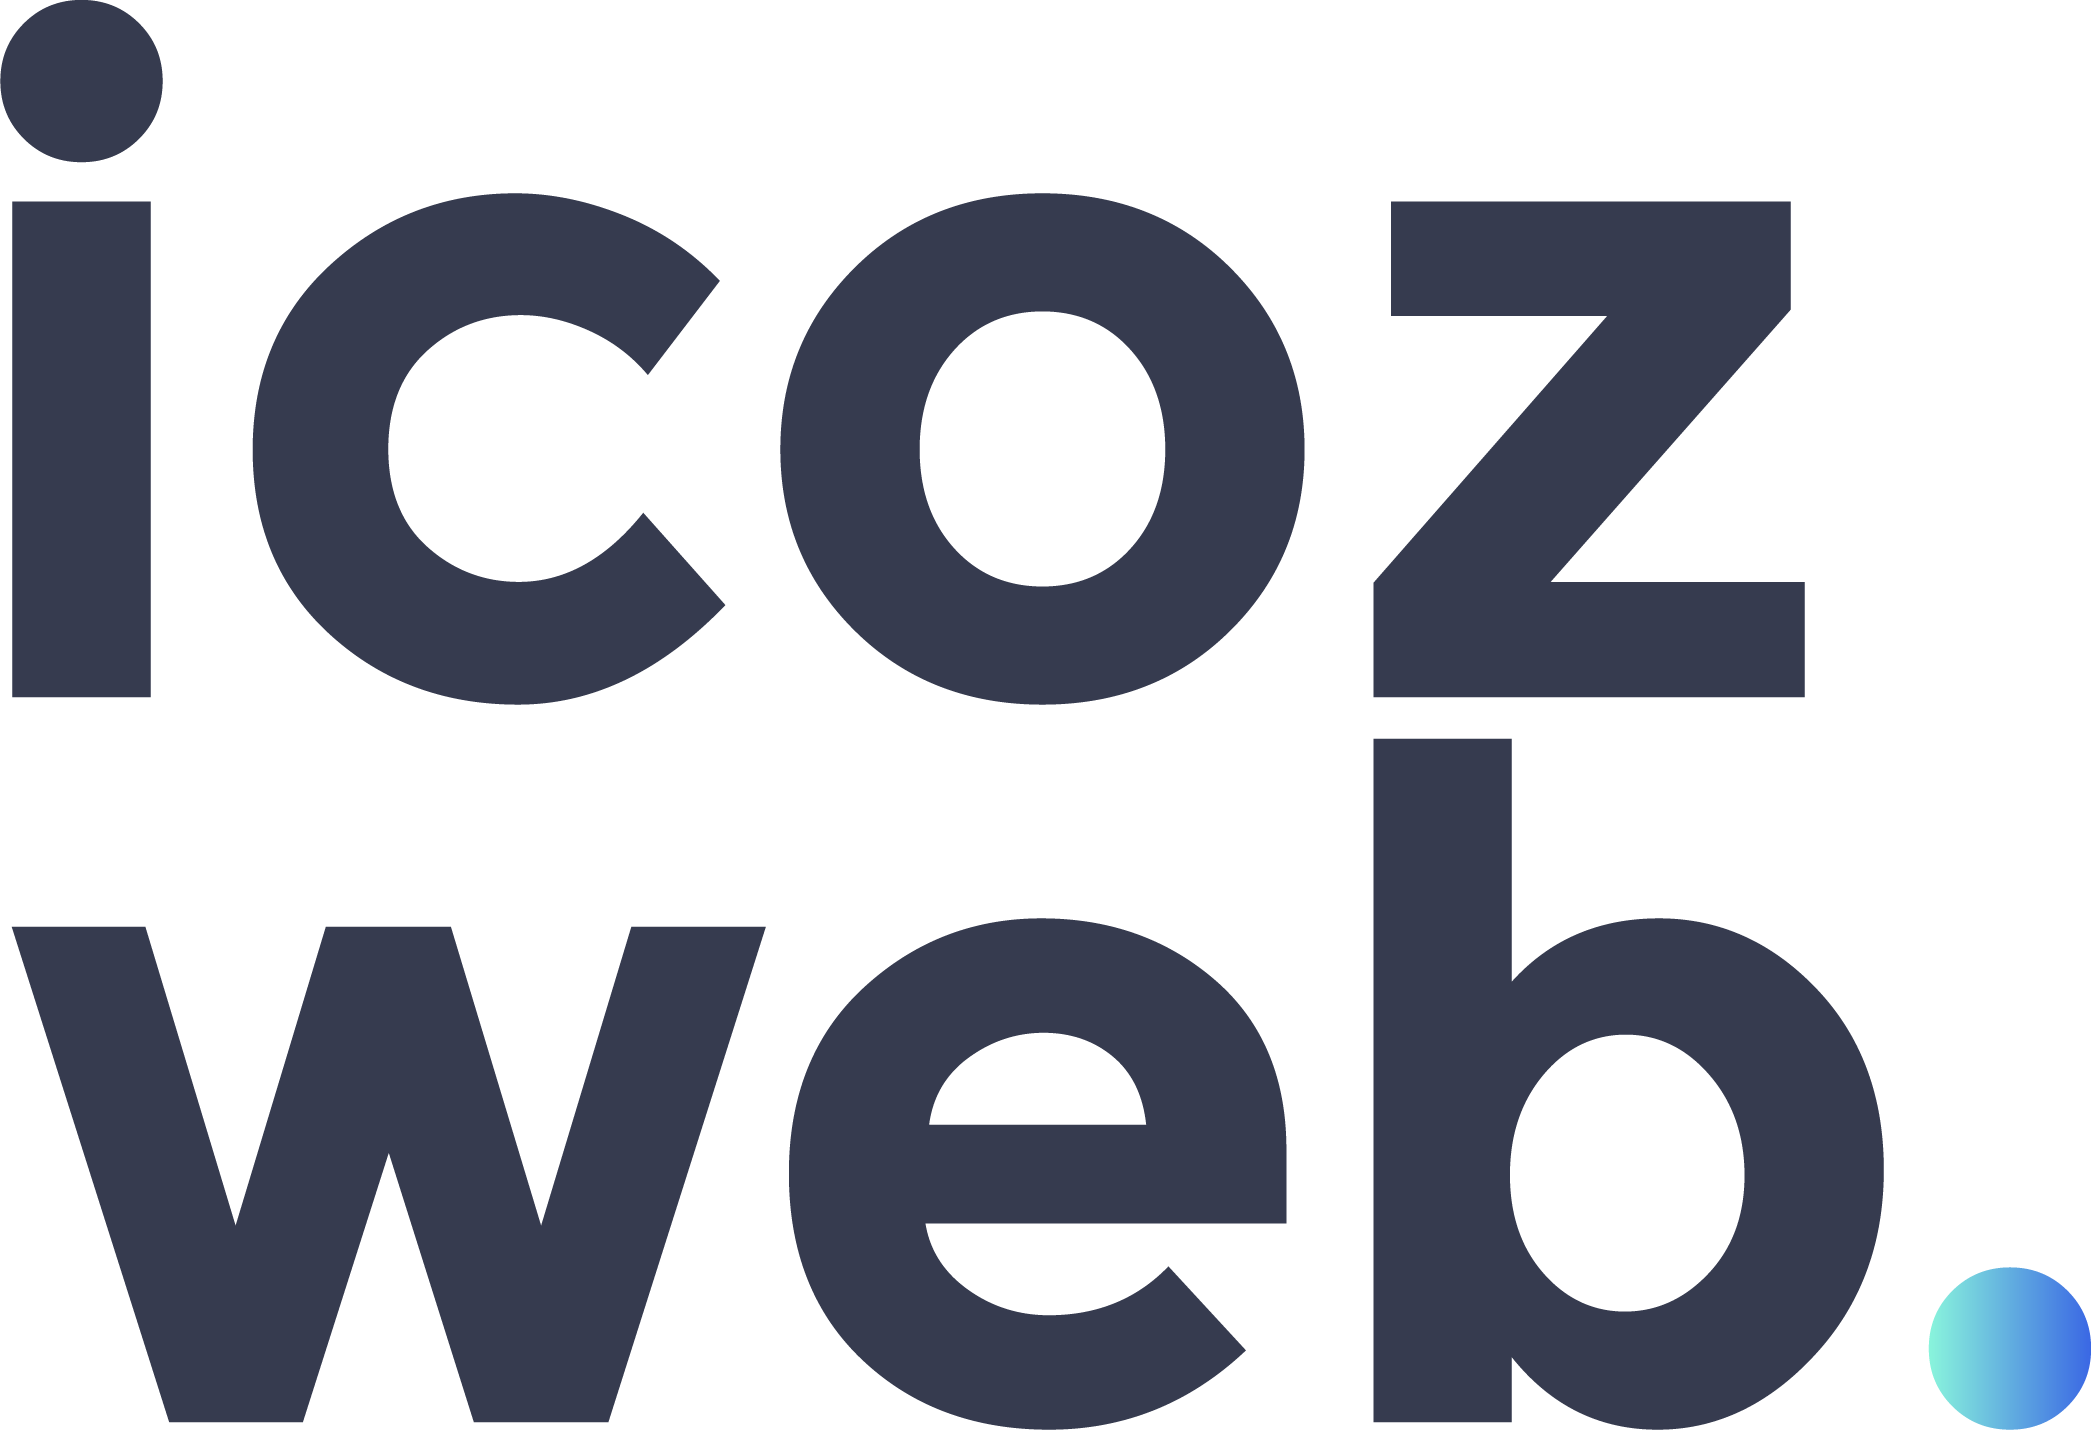 IcozWeb - Smart Ads Plataform